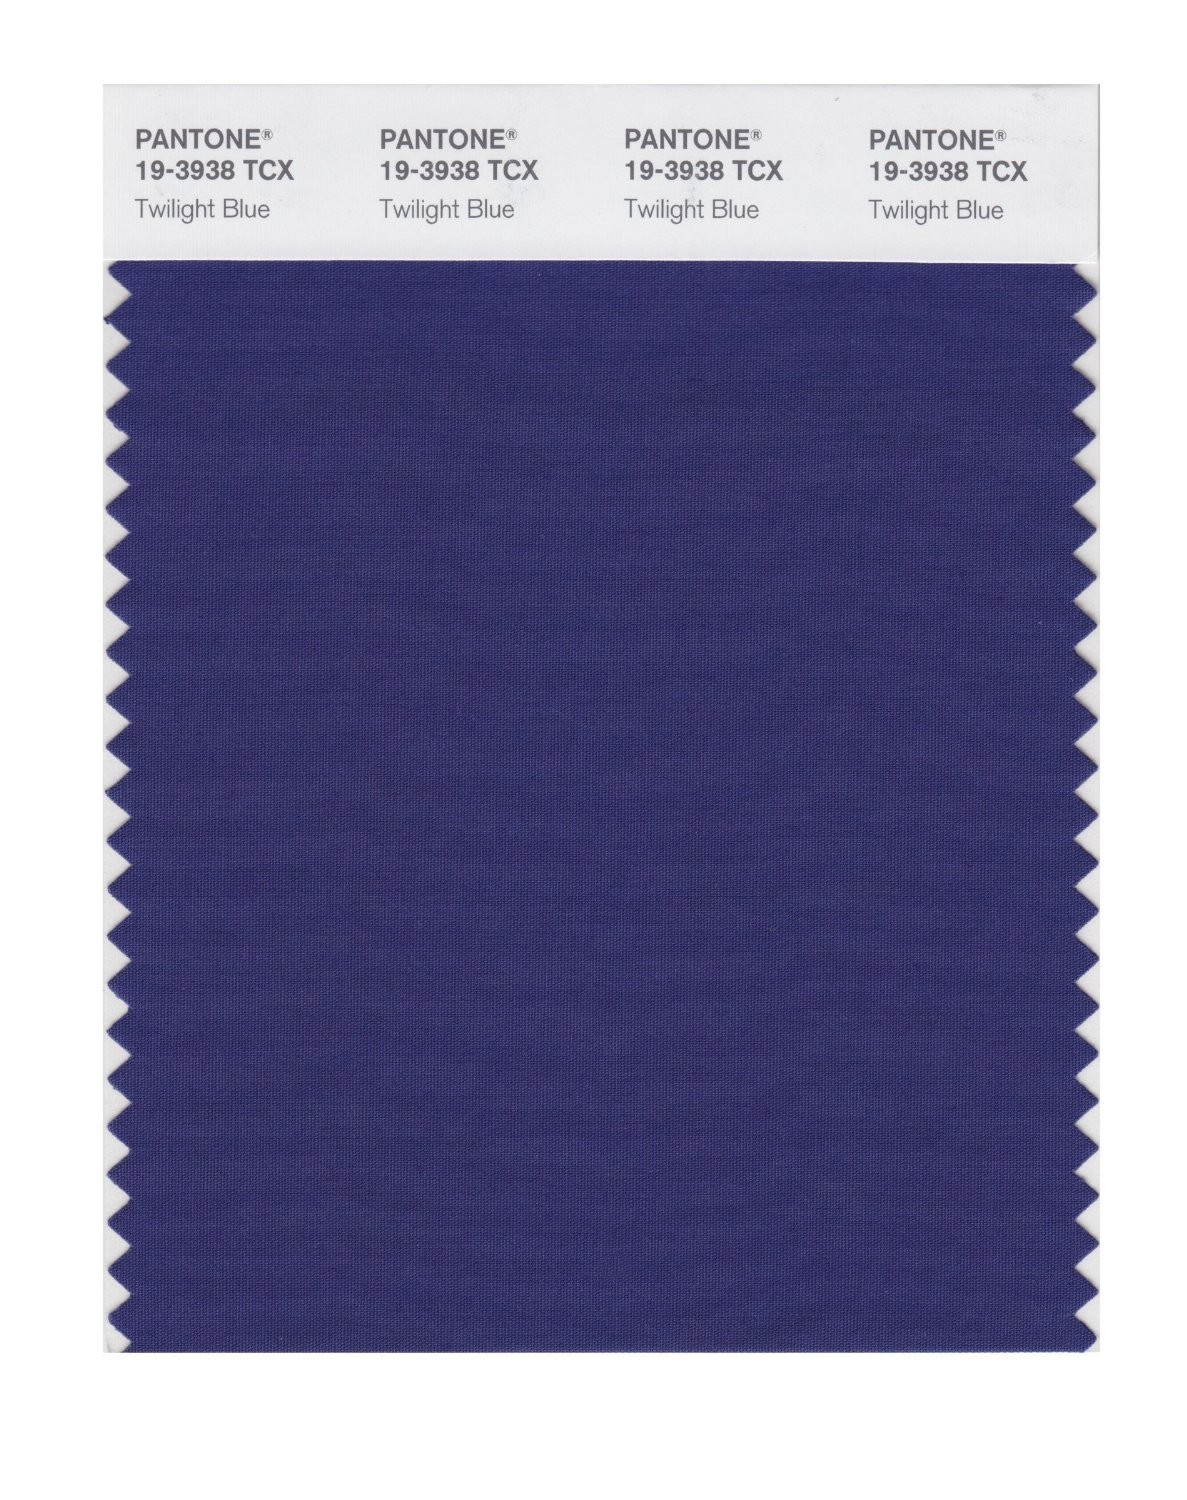 Pantone 19-3938 TCX Swatch Card Twilight Blue